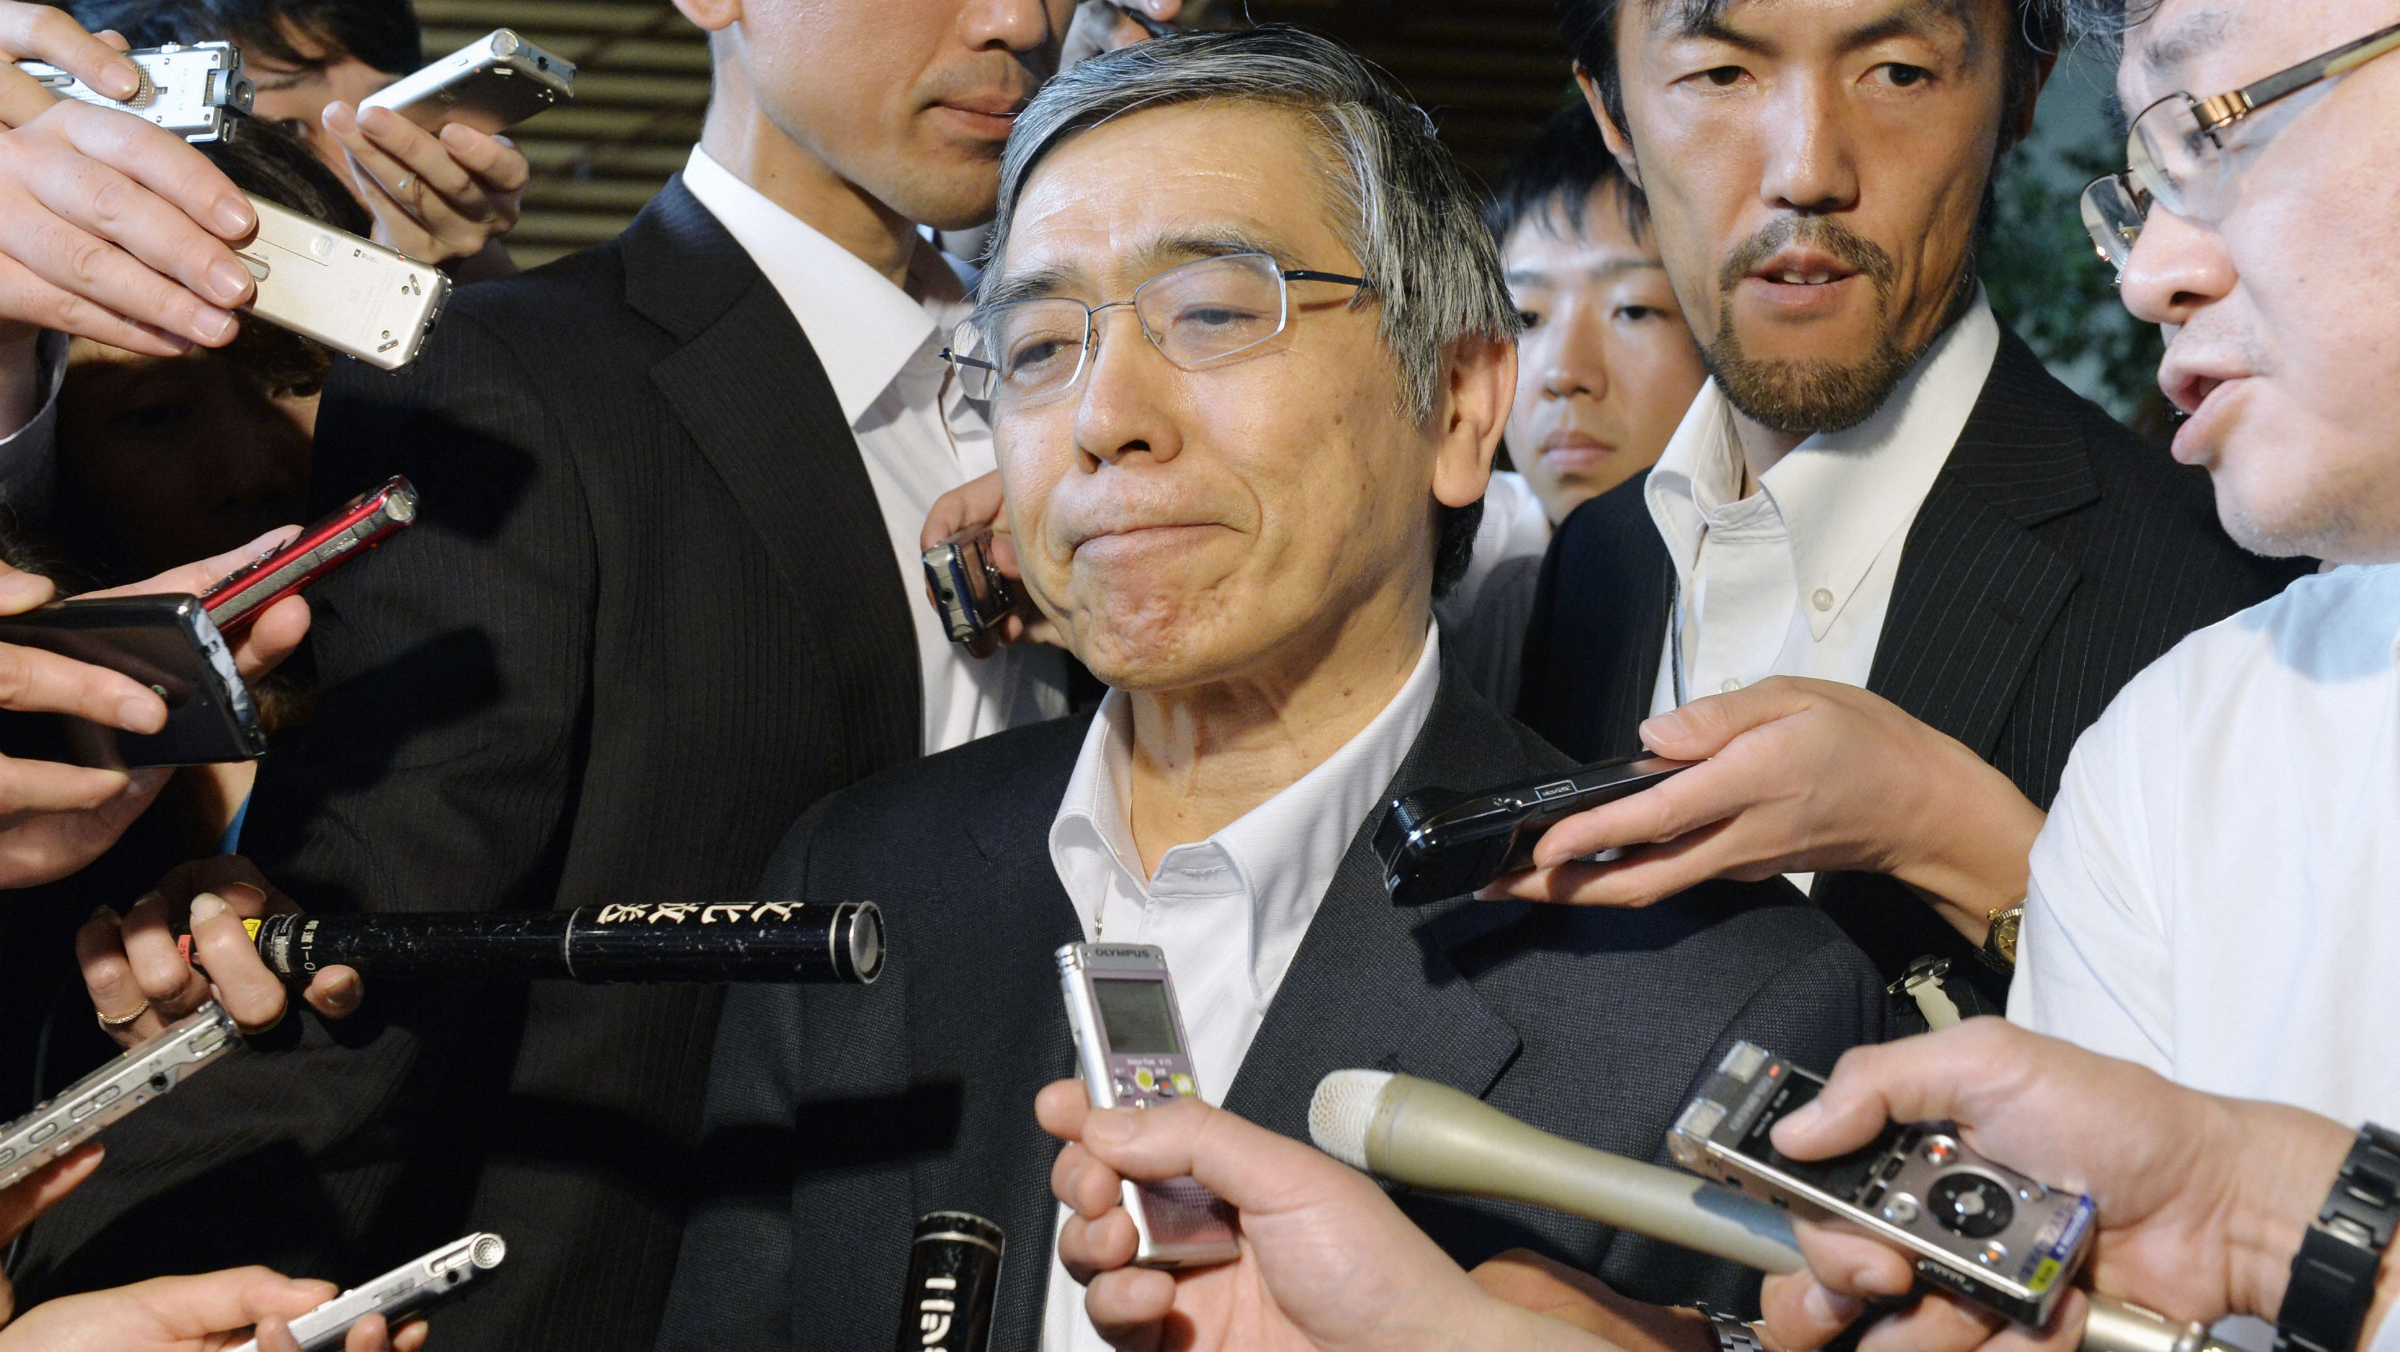 TOKYO, Japan - Bank of Japan chief Haruhiko Kuroda speaks to the press at the prime minister's office in Tokyo on June 13, 2013, after meeting with Prime Minister Shinzo Abe to discuss economic conditions and recent volatility in equity and foreign exchange markets. (Kyodo via AP Images